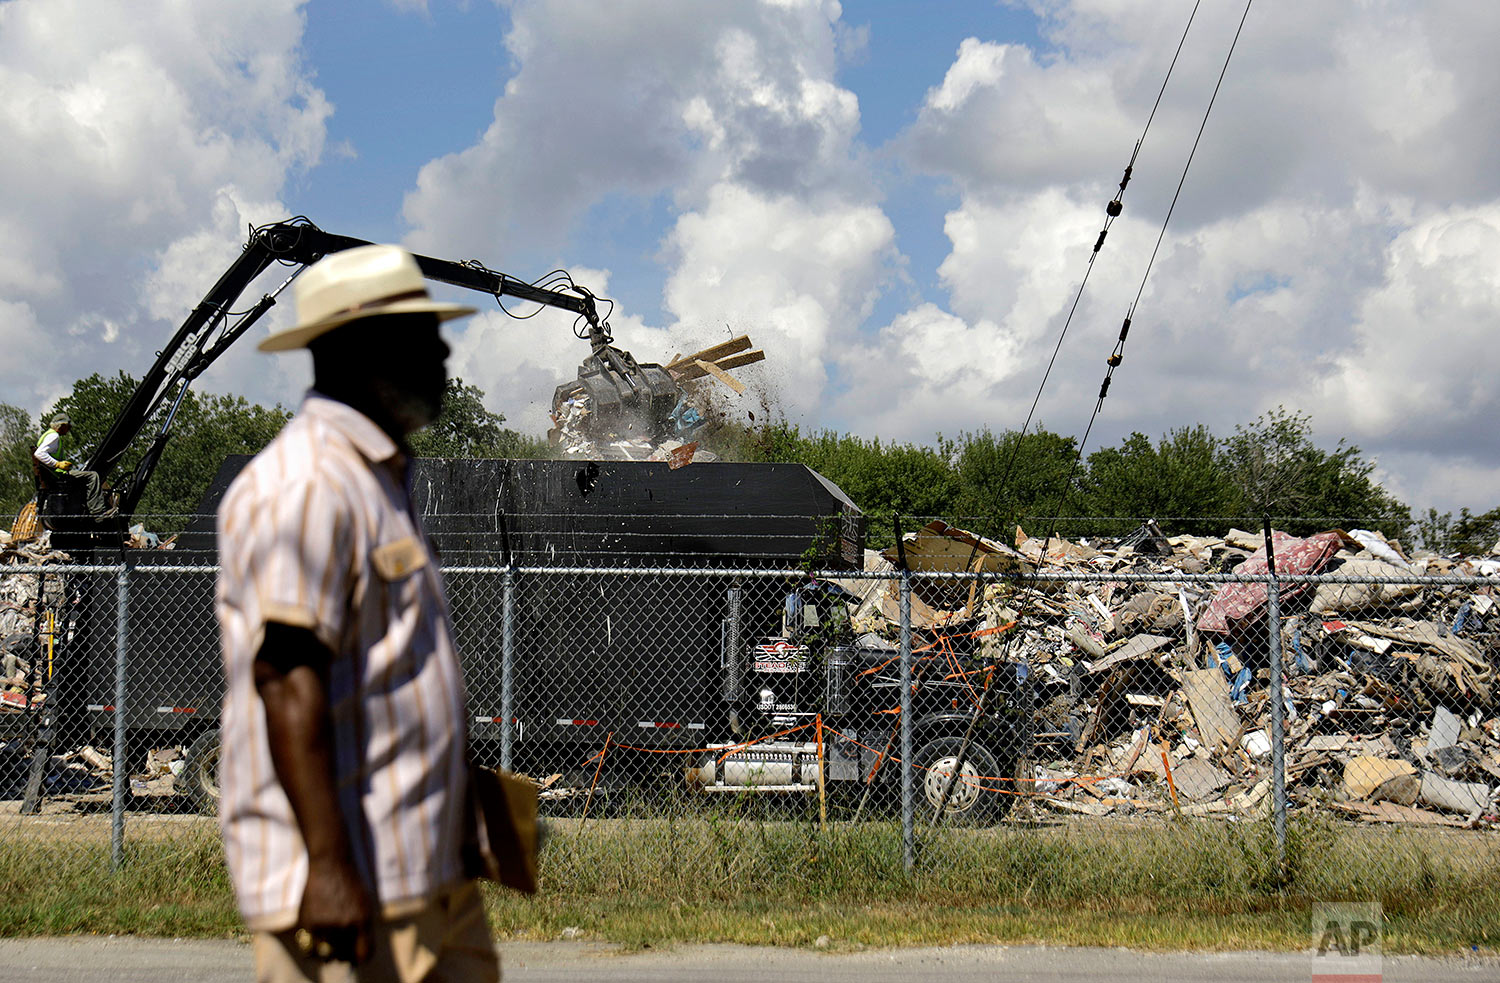 """Hilton Kelley walks by as a truck unloads flood damaged debris at a makeshift dump across the street from a residential neighborhood in Port Arthur, Texas, Wednesday, Sept. 27, 2017. Kelley is fighting to get the dump shut down for fear of nearby residents breathing in mold. Kelley says many people in Port Arthur understand the impact local industry has on climate change and pollution. But he says they're often hesitant to speak out. """"When you have people living at or below the poverty line, many people are hopeful of getting jobs at those refineries or chemical plants."""" (AP Photo/David Goldman)"""